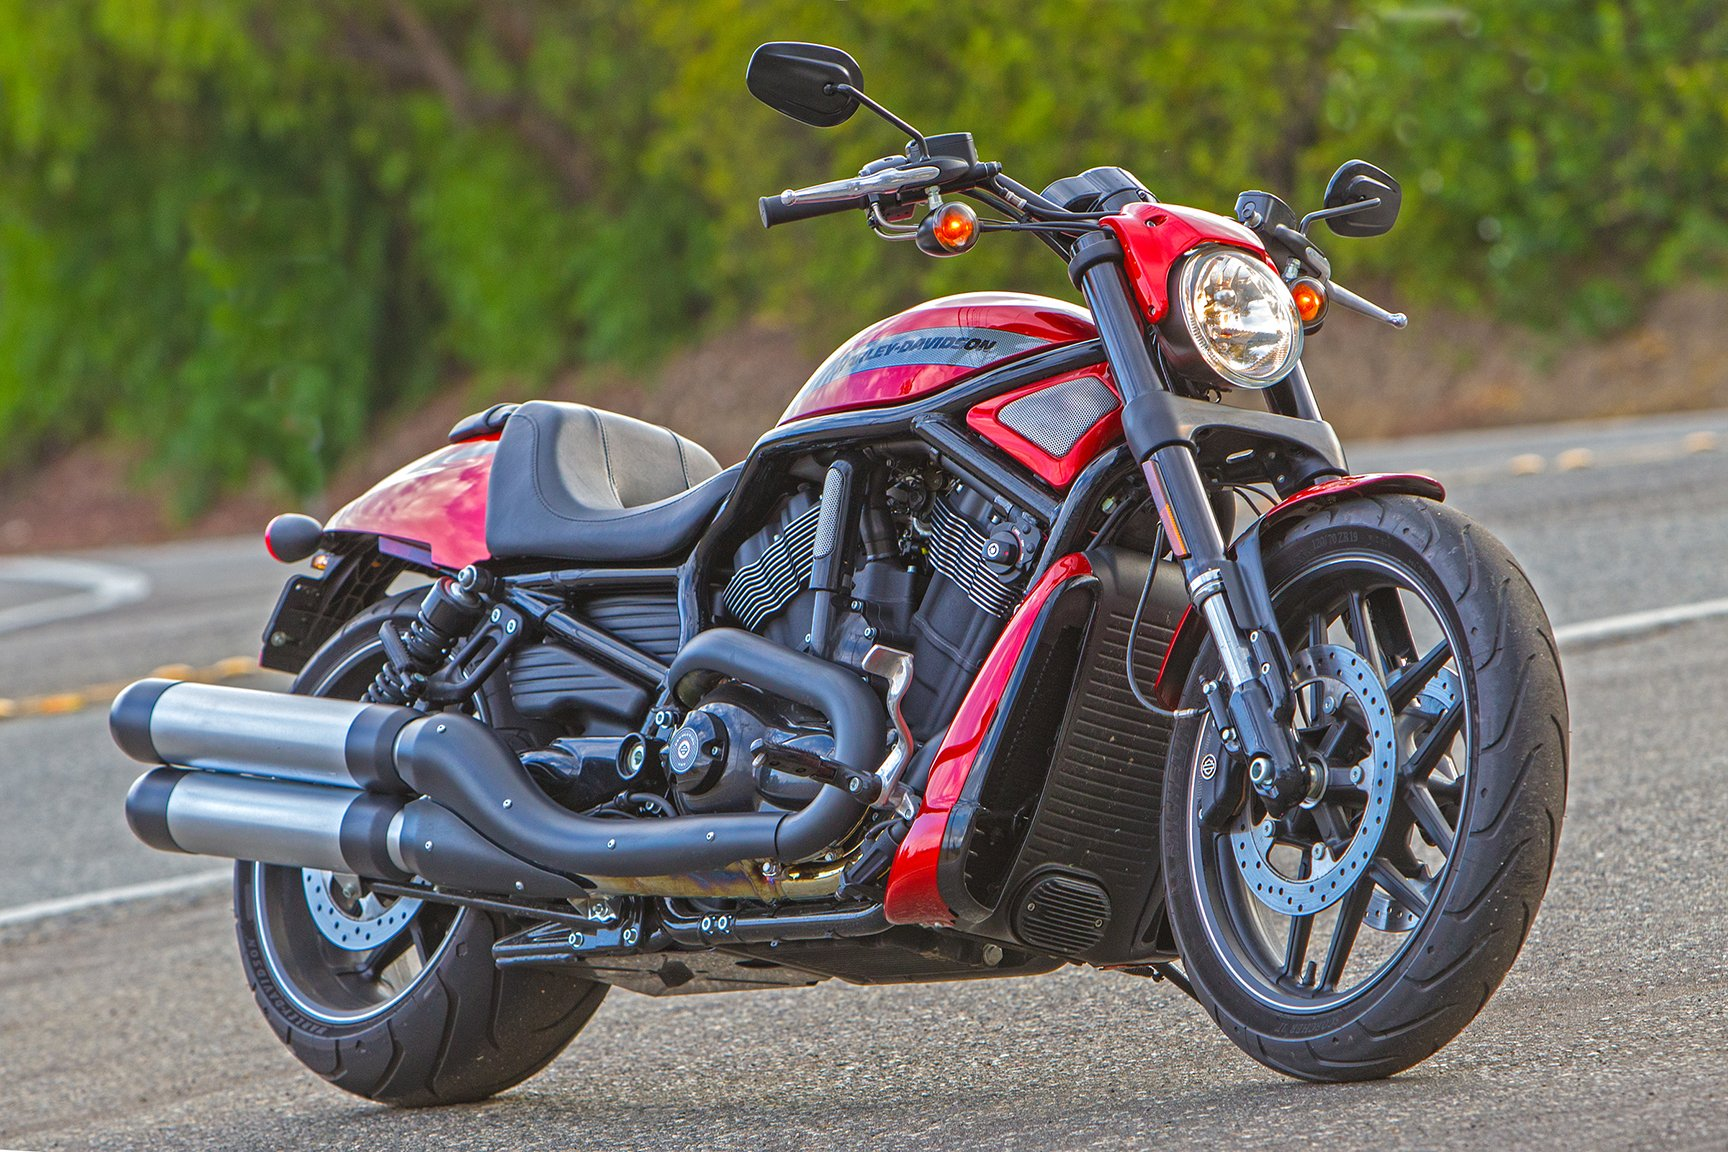 2015 Harley Davidson Night Rod Special Review Motorcycle Com